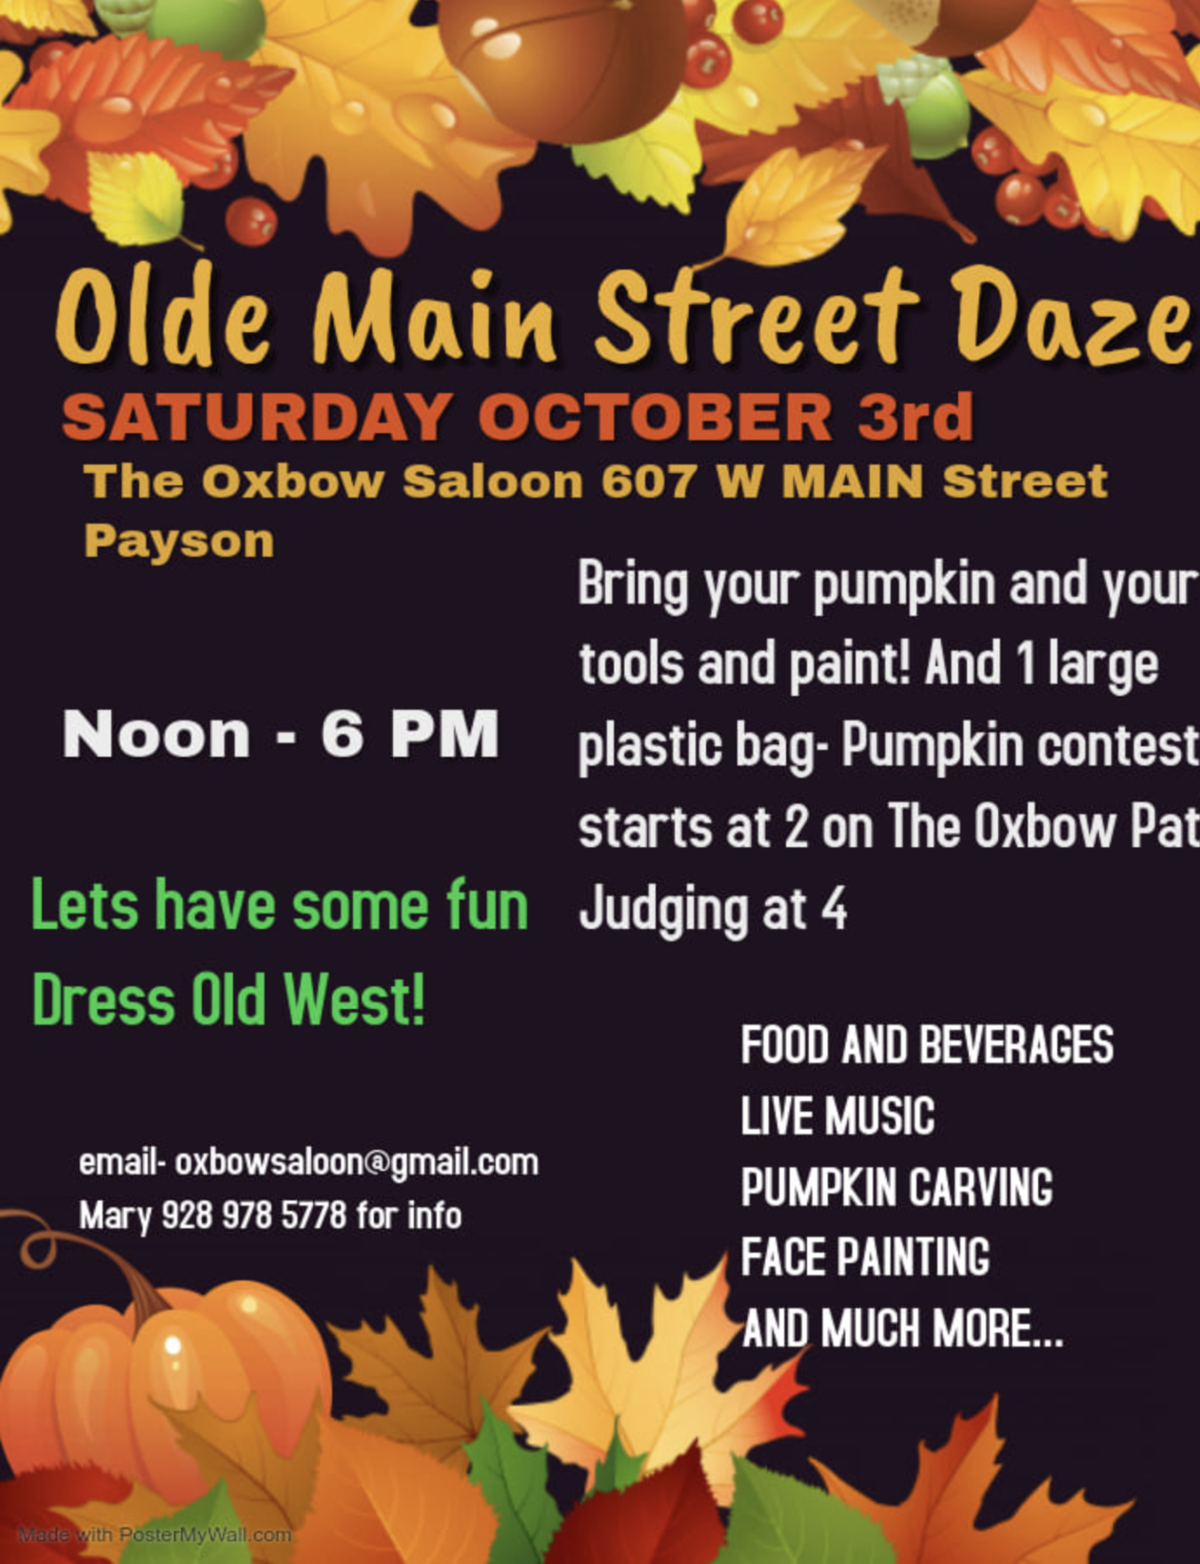 OwBow poster for the 2020 Olde Main Street Daze